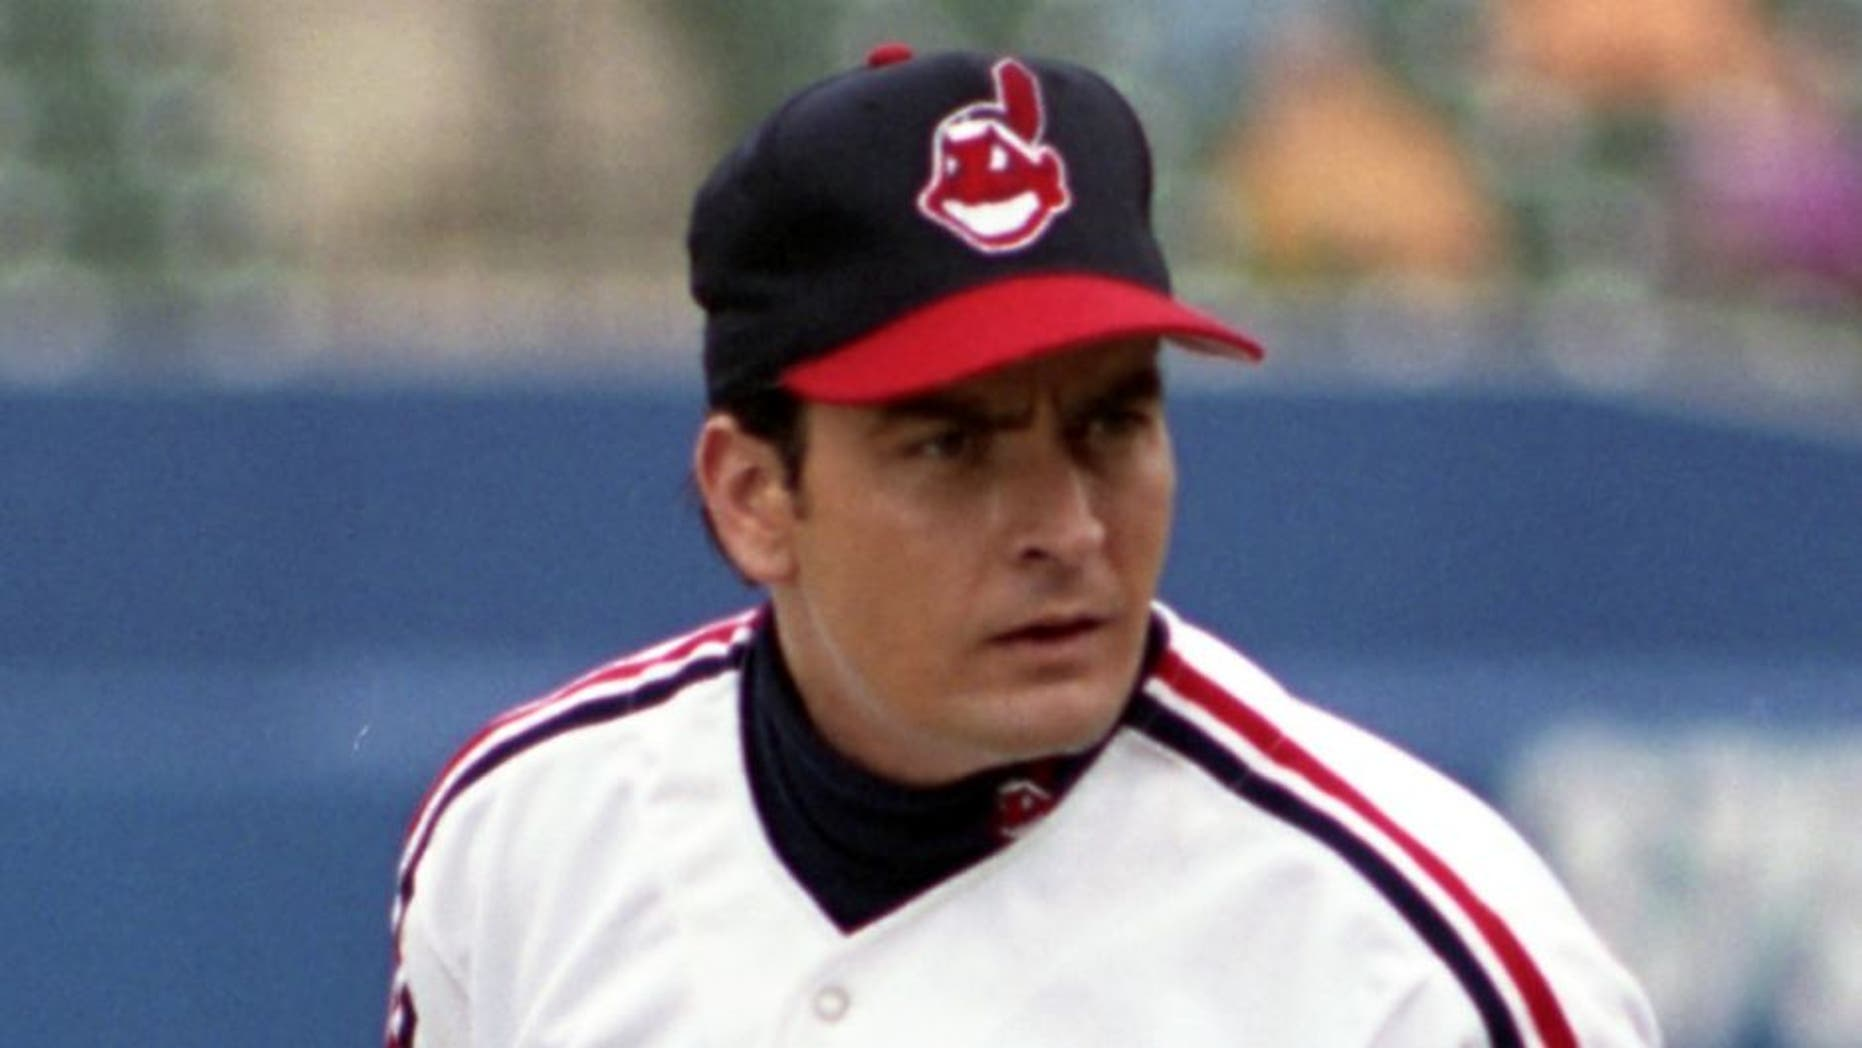 """BALTIMORE, MD - SEPTEMBER, 1993: Actor Charlie Sheen as Rick Wild Thing Vaughn #99 of the Cleveland Indians gets the sign for the next pitch from the catcher during the filming of the motion picture """"Major League II"""" in September, 1993 at Camden Yards in Baltimore, Maryland. (Photo by: Diamond Images/Getty Images)"""